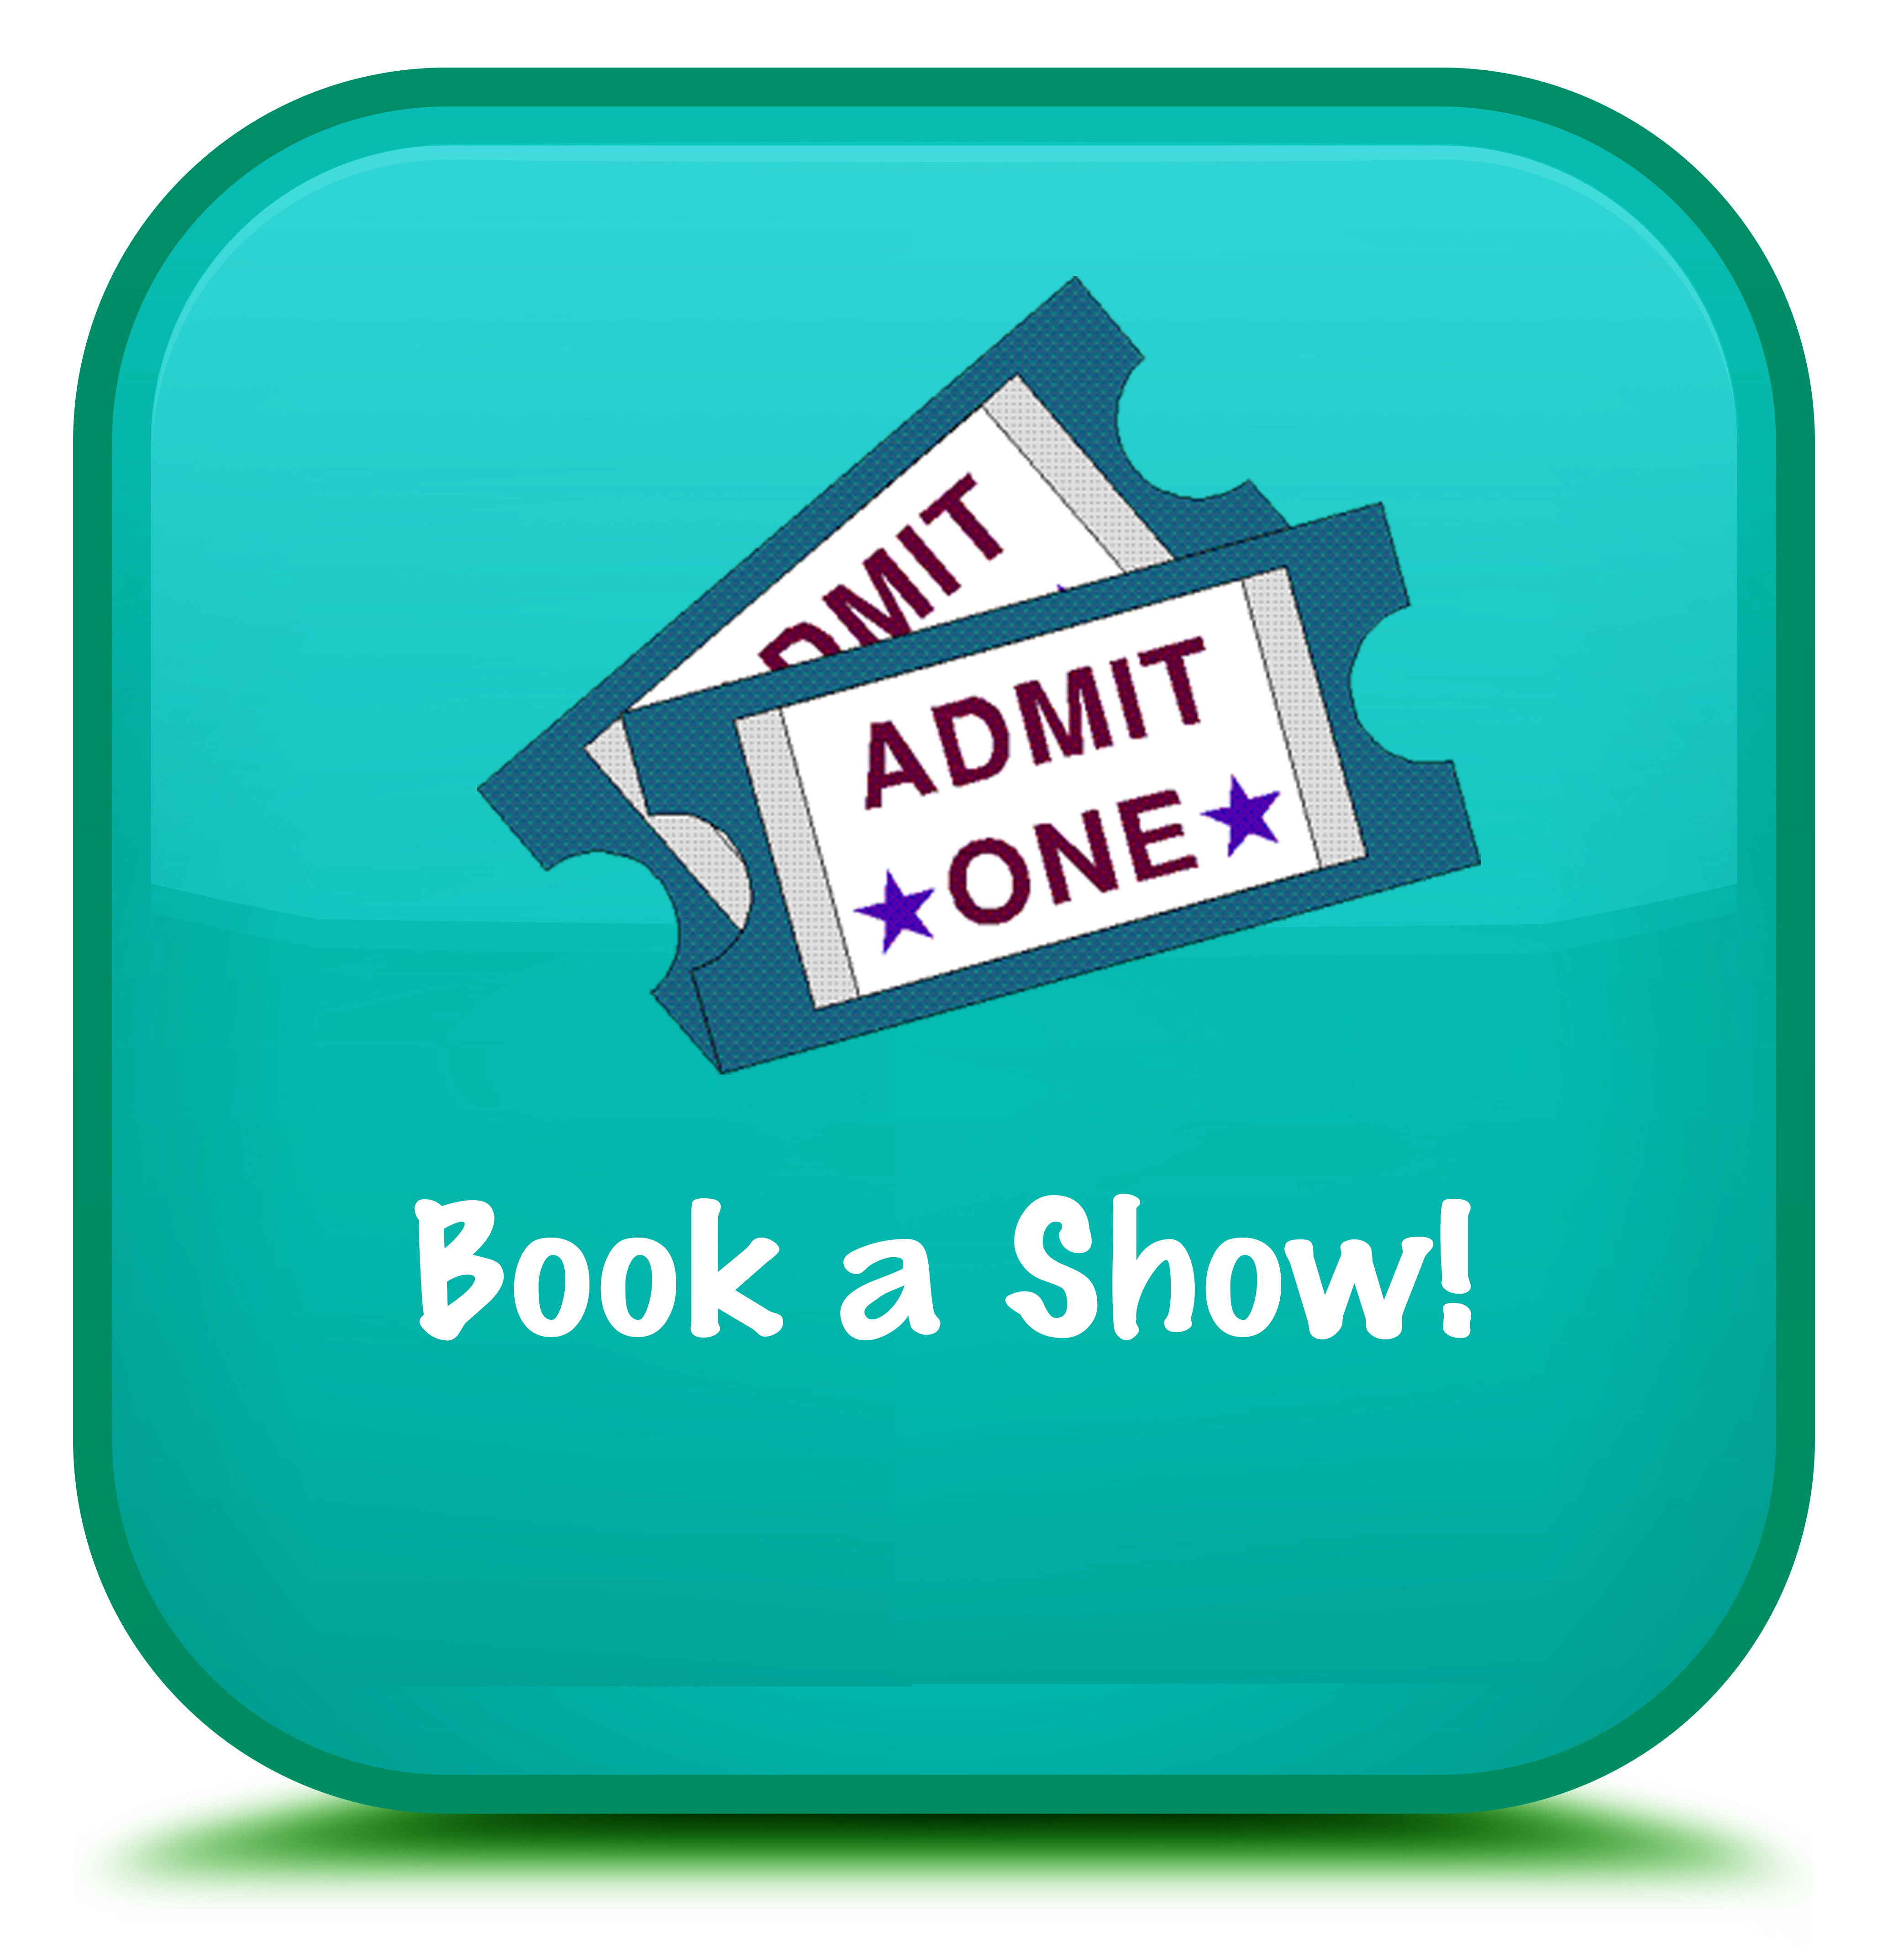 Click here to book a show